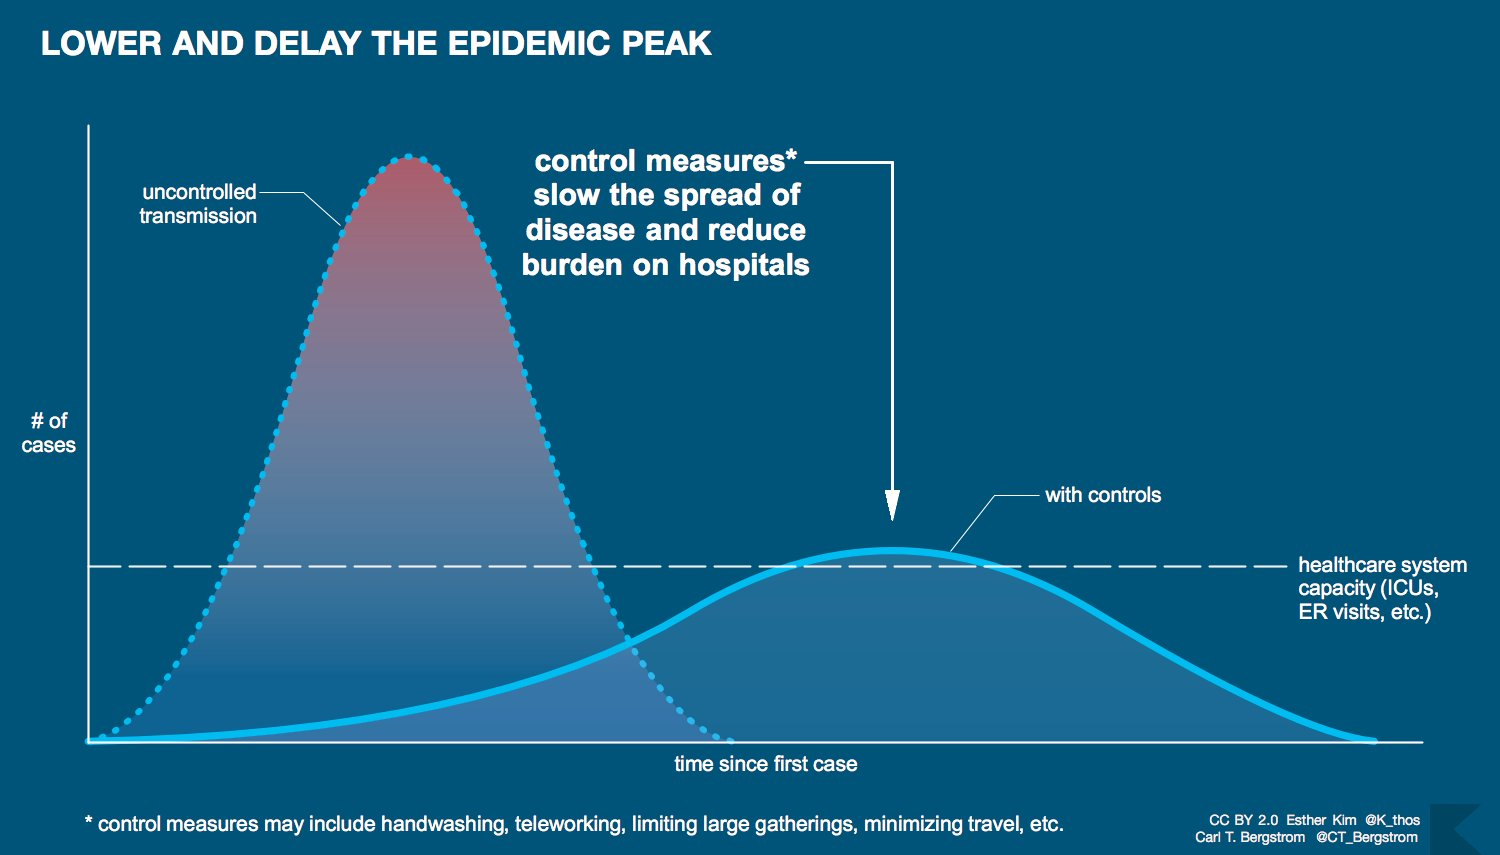 Lower and delay the epidemic peak by flattening the curve